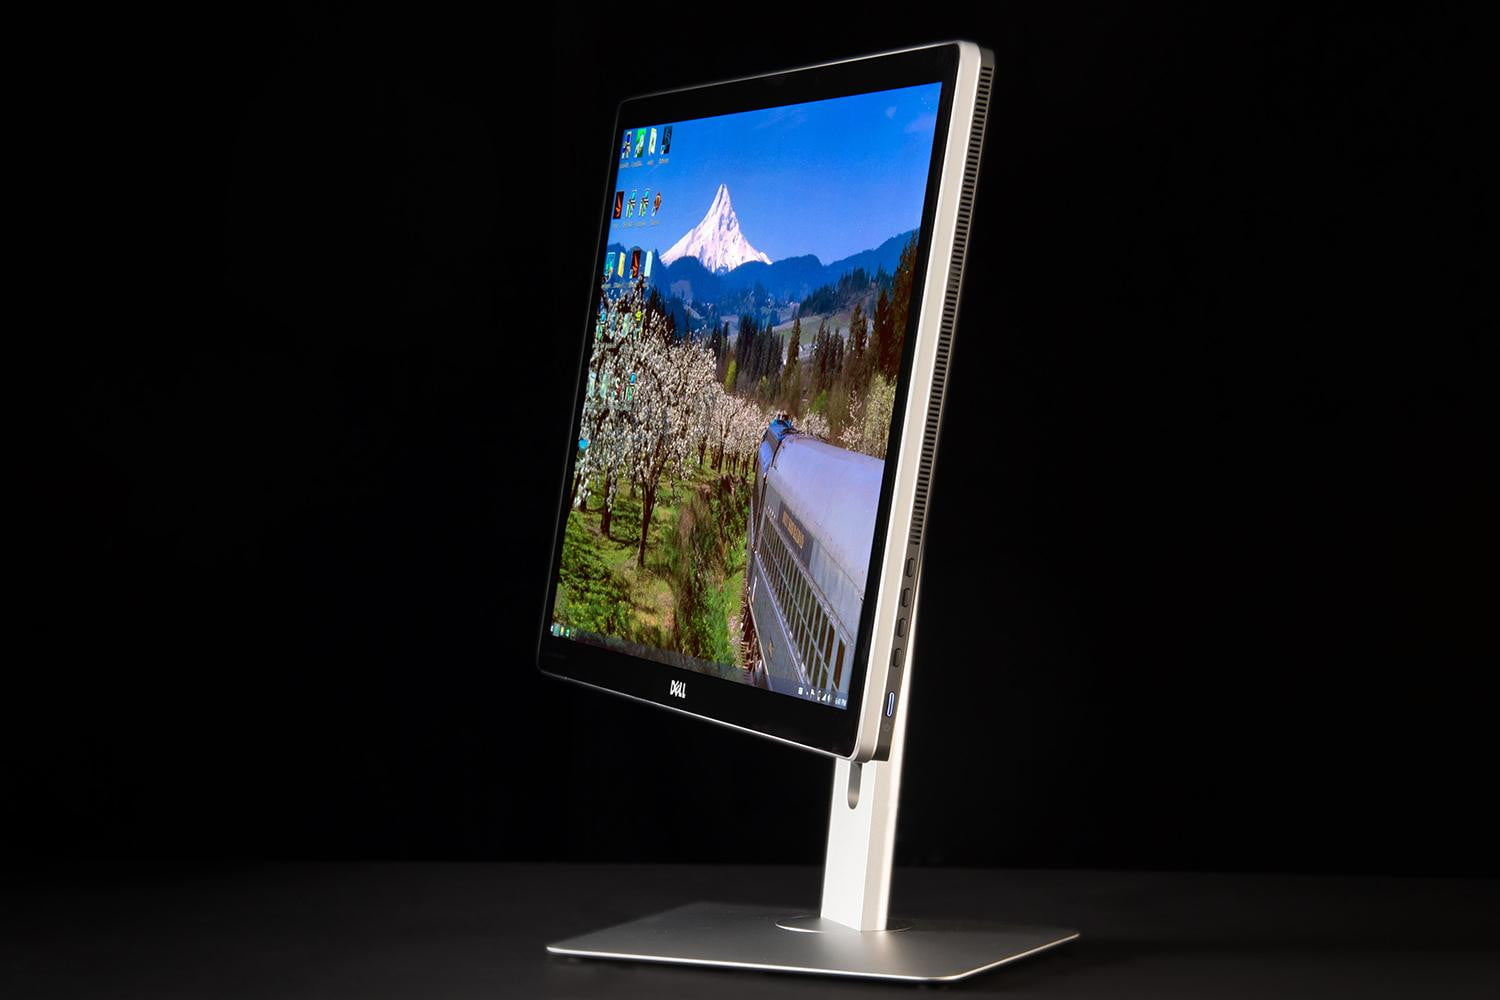 Computer monitor buying guide | Digital Trends